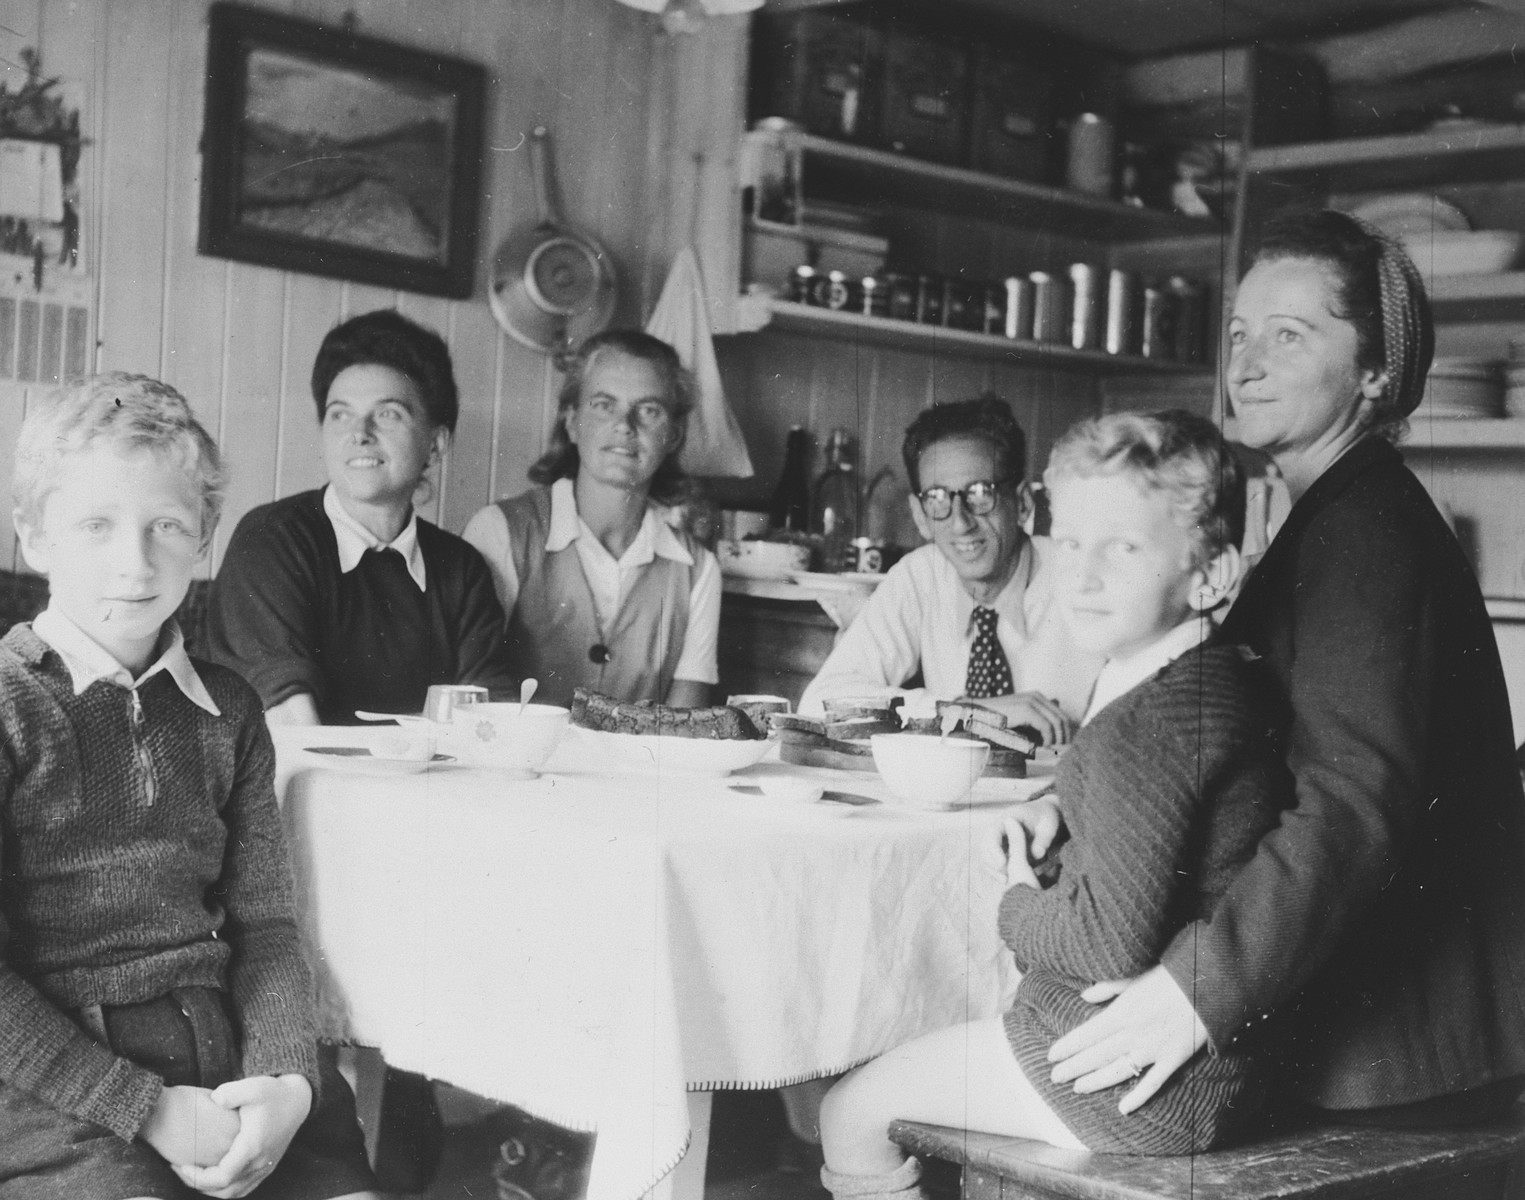 Jewish refugees gather around a table in their apartment in Geneva.  Among those pictured are the photographer, Walter Limot, and his wife Ines and sons, Andre and Claude.